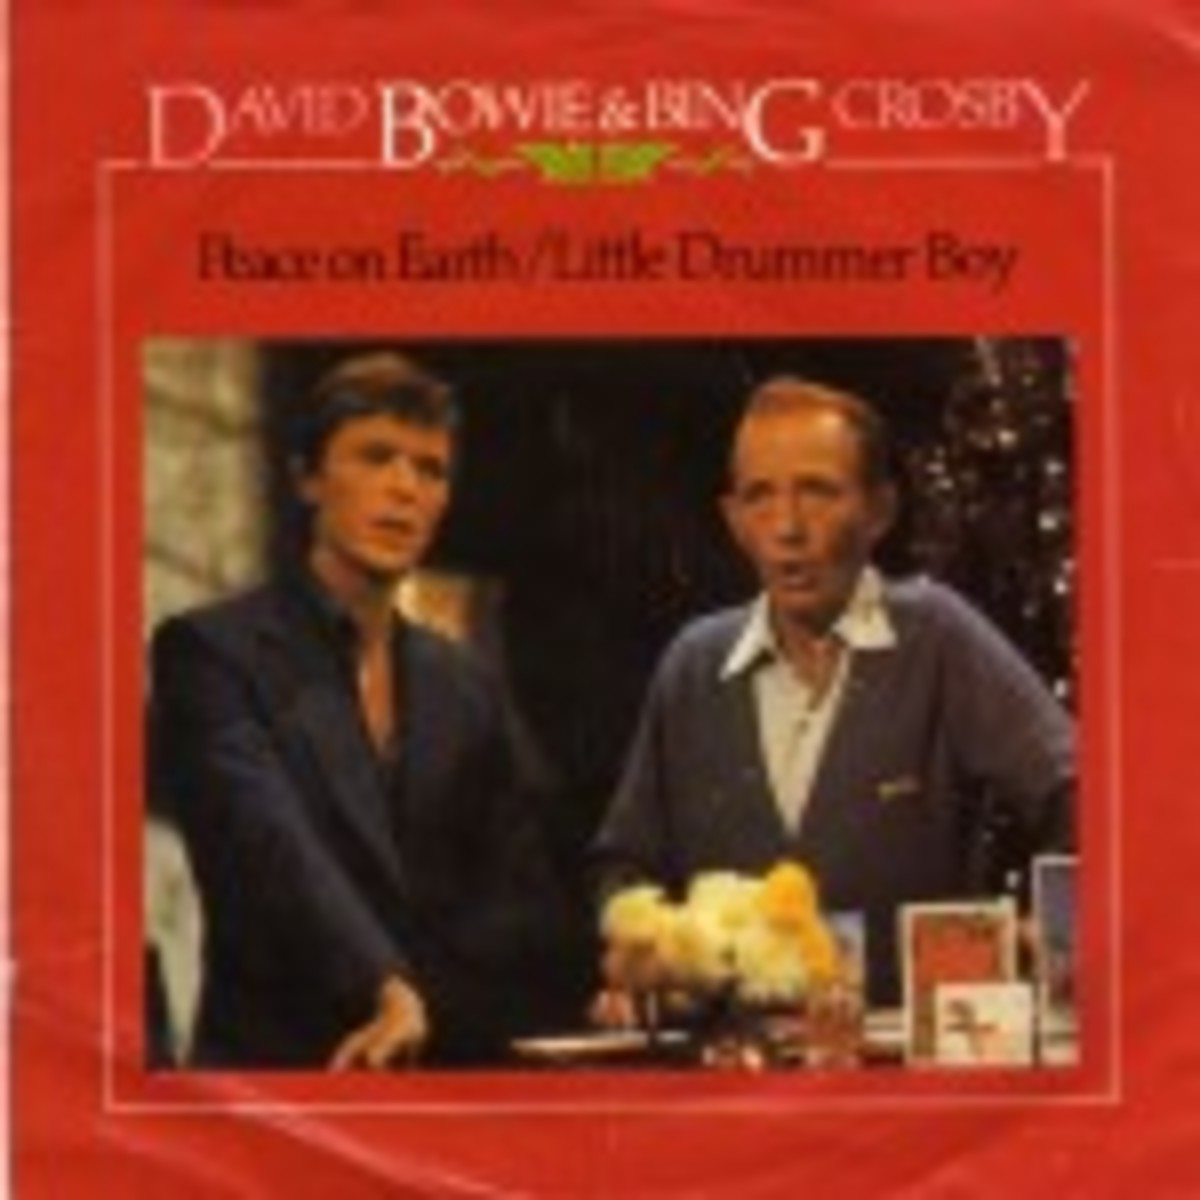 Peace On Earth with Little Drummer Boy David Bowie and Bing Crosby